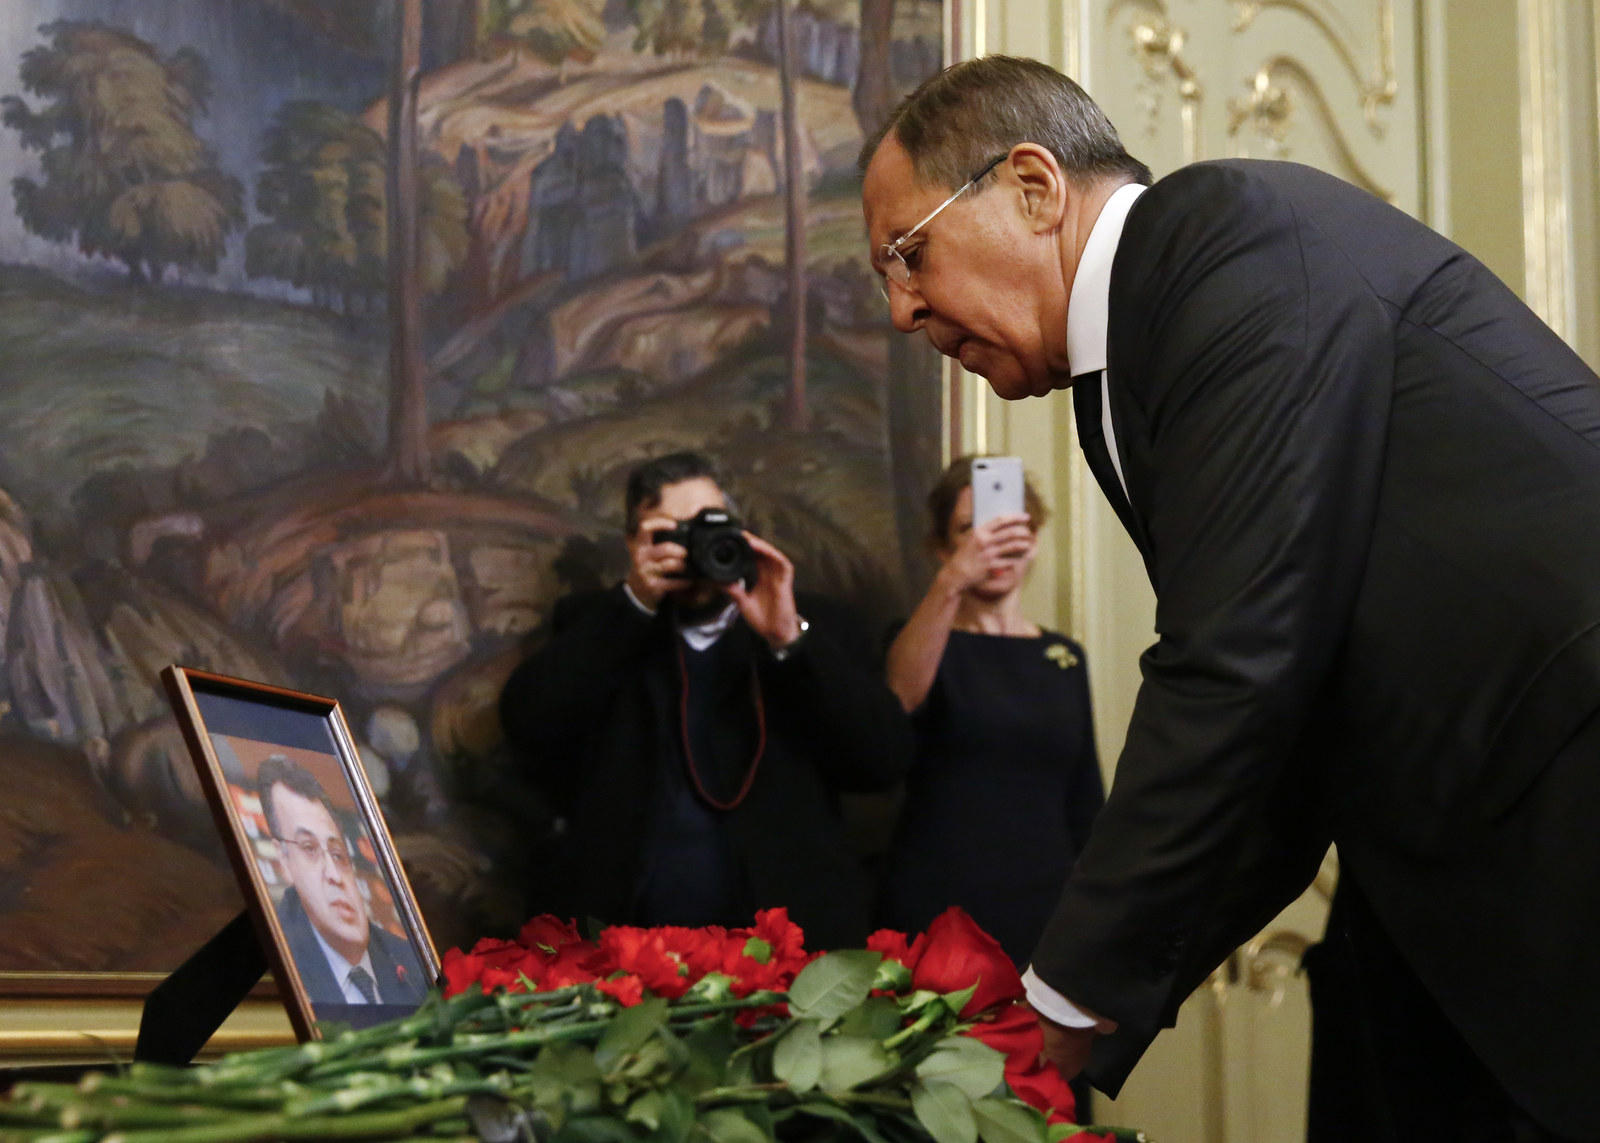 Russian Ambassador's Killing Shows How Syria's Conflict Is Only Going To Get Worse